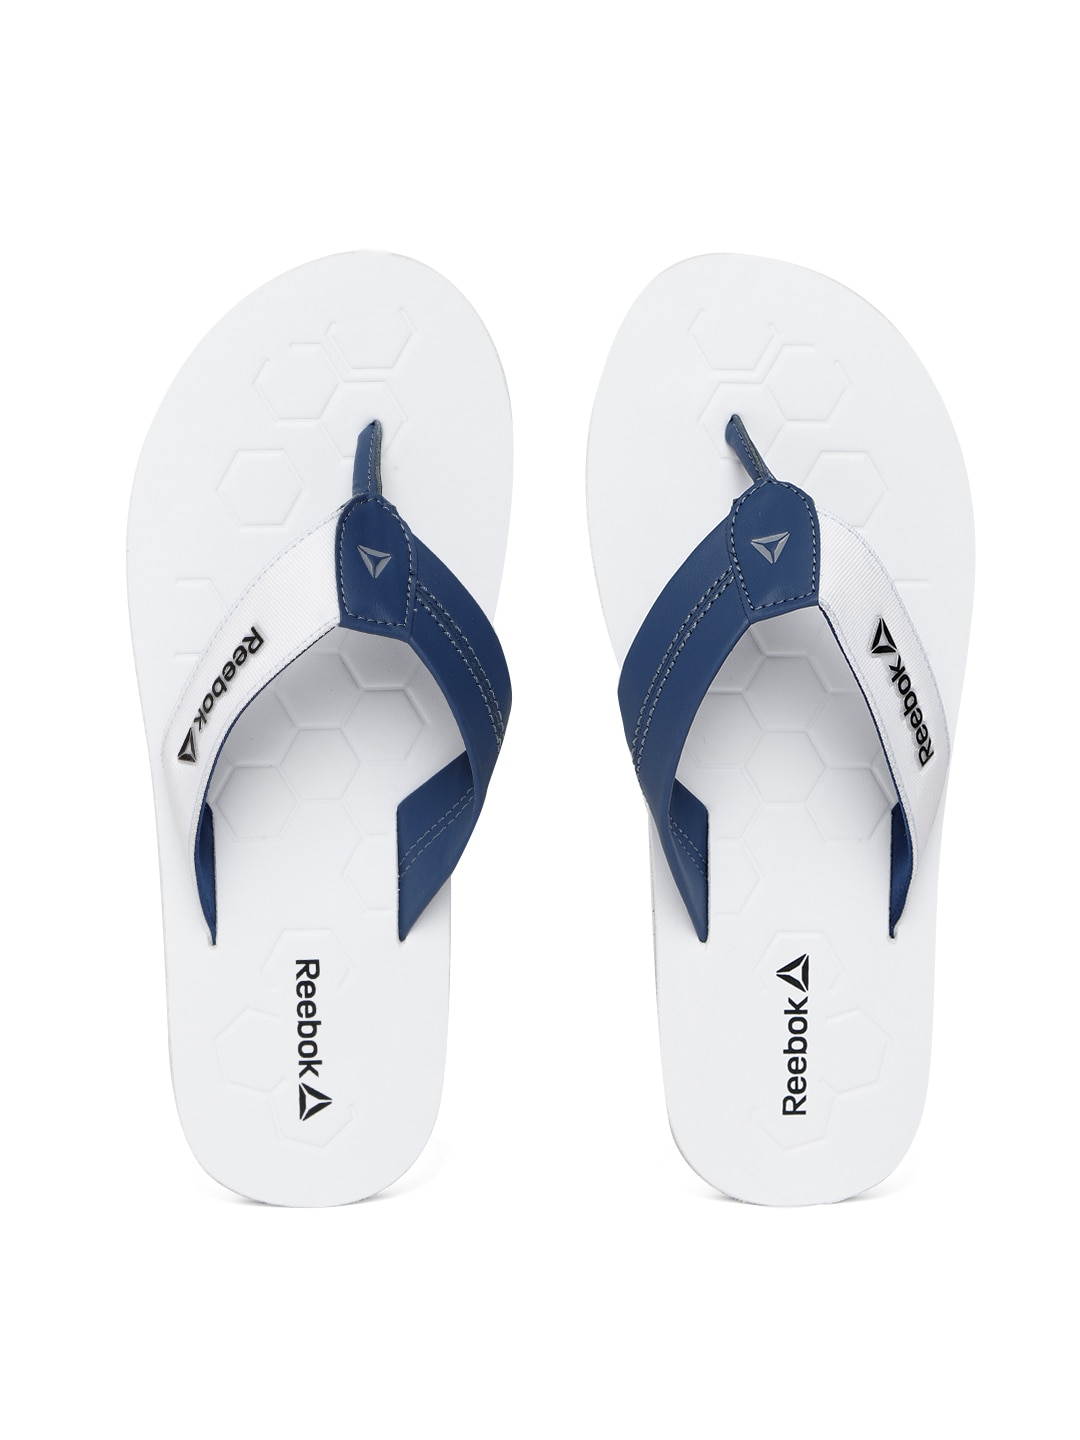 6f6196a72522 Reebok Sports Footwear - Buy Reebok Sports Footwear Online in India